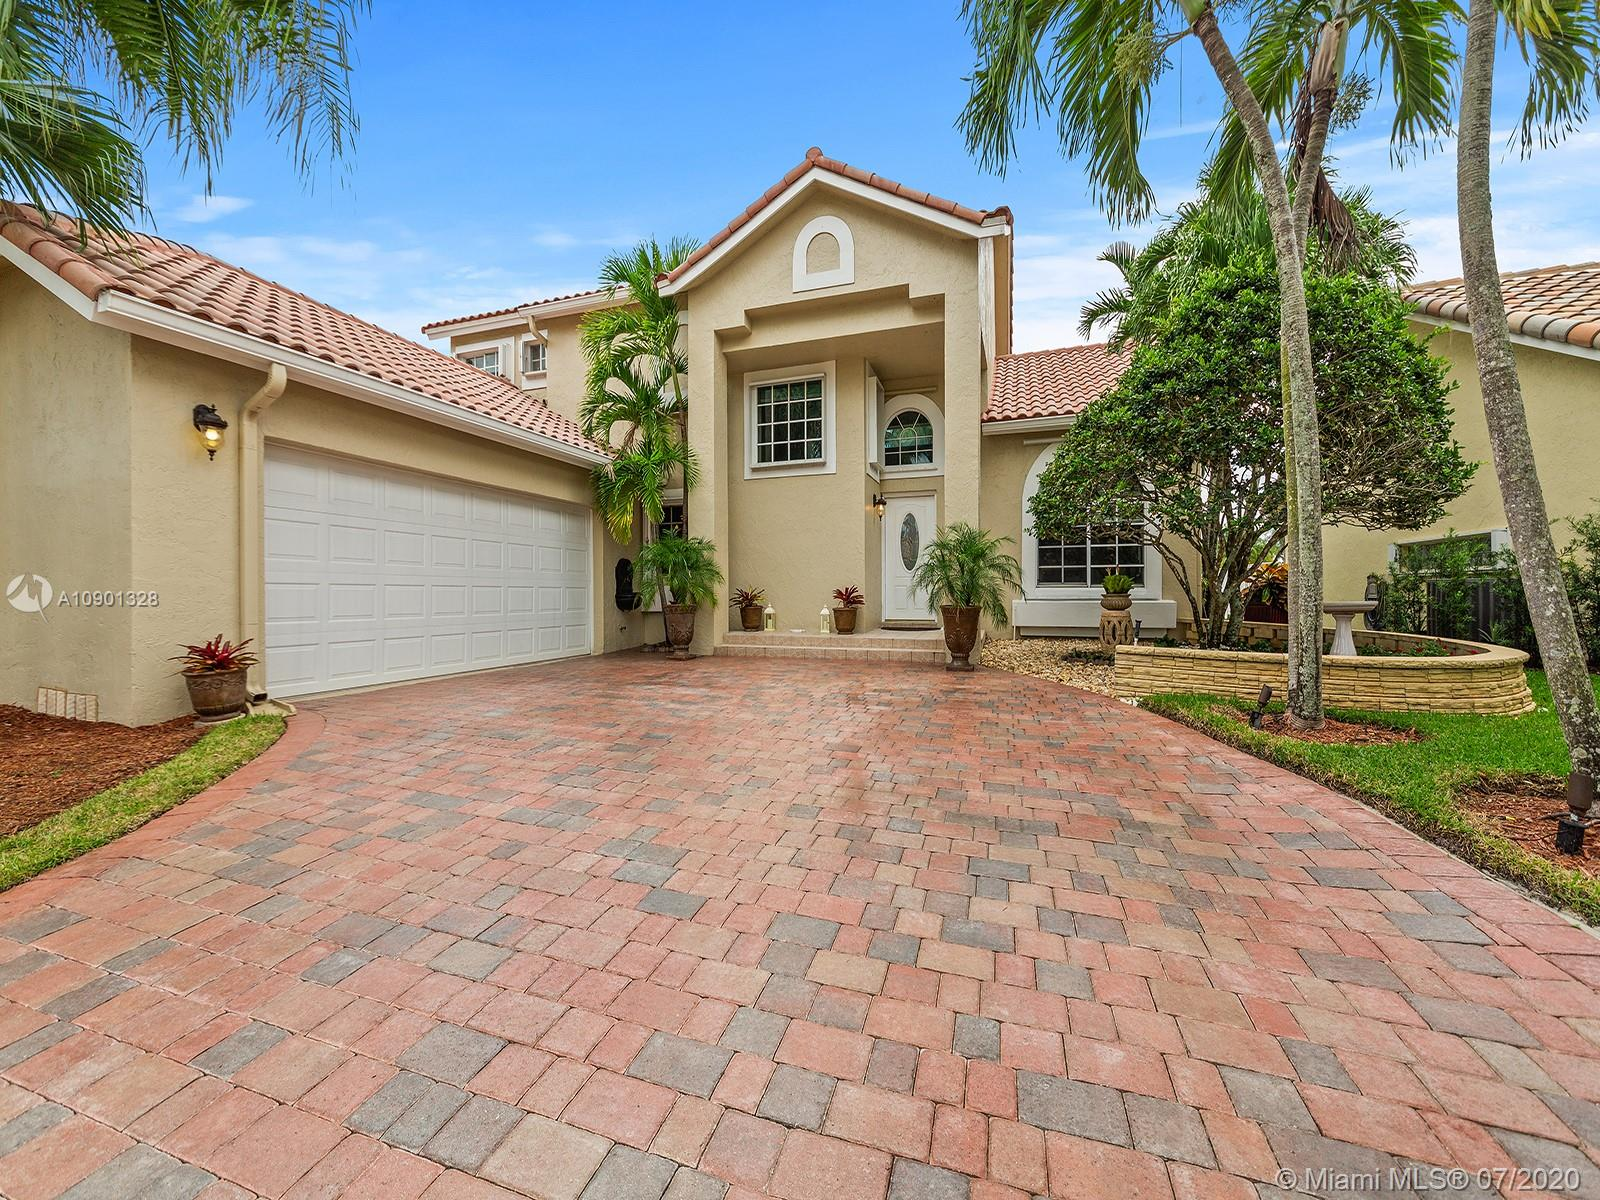 Can't miss this opportunity, enjoy living in this gated community with pool overlooking serene lake, clubhouse and playground! A+ school district and walking distance to Weston Town Center. Premium lot with water views and beautiful oversized screened in pool/patio area. Superbly maintained by original owners; copper plumbing, custom window treatments, custom closets, 2 car garage, newer AC & roof, marble & Brazilian hardwood flooring. Enjoy water views throughout the home, extended paved driveway and plush landscaping. Kitchen includes beautiful custom cabinetry with stainless steel appliances, granite counter tops, porcelain farmhouse sink and french doors with custom plantation shutters giving access to pool area.  Hurricane shutters installed. Do not miss out!